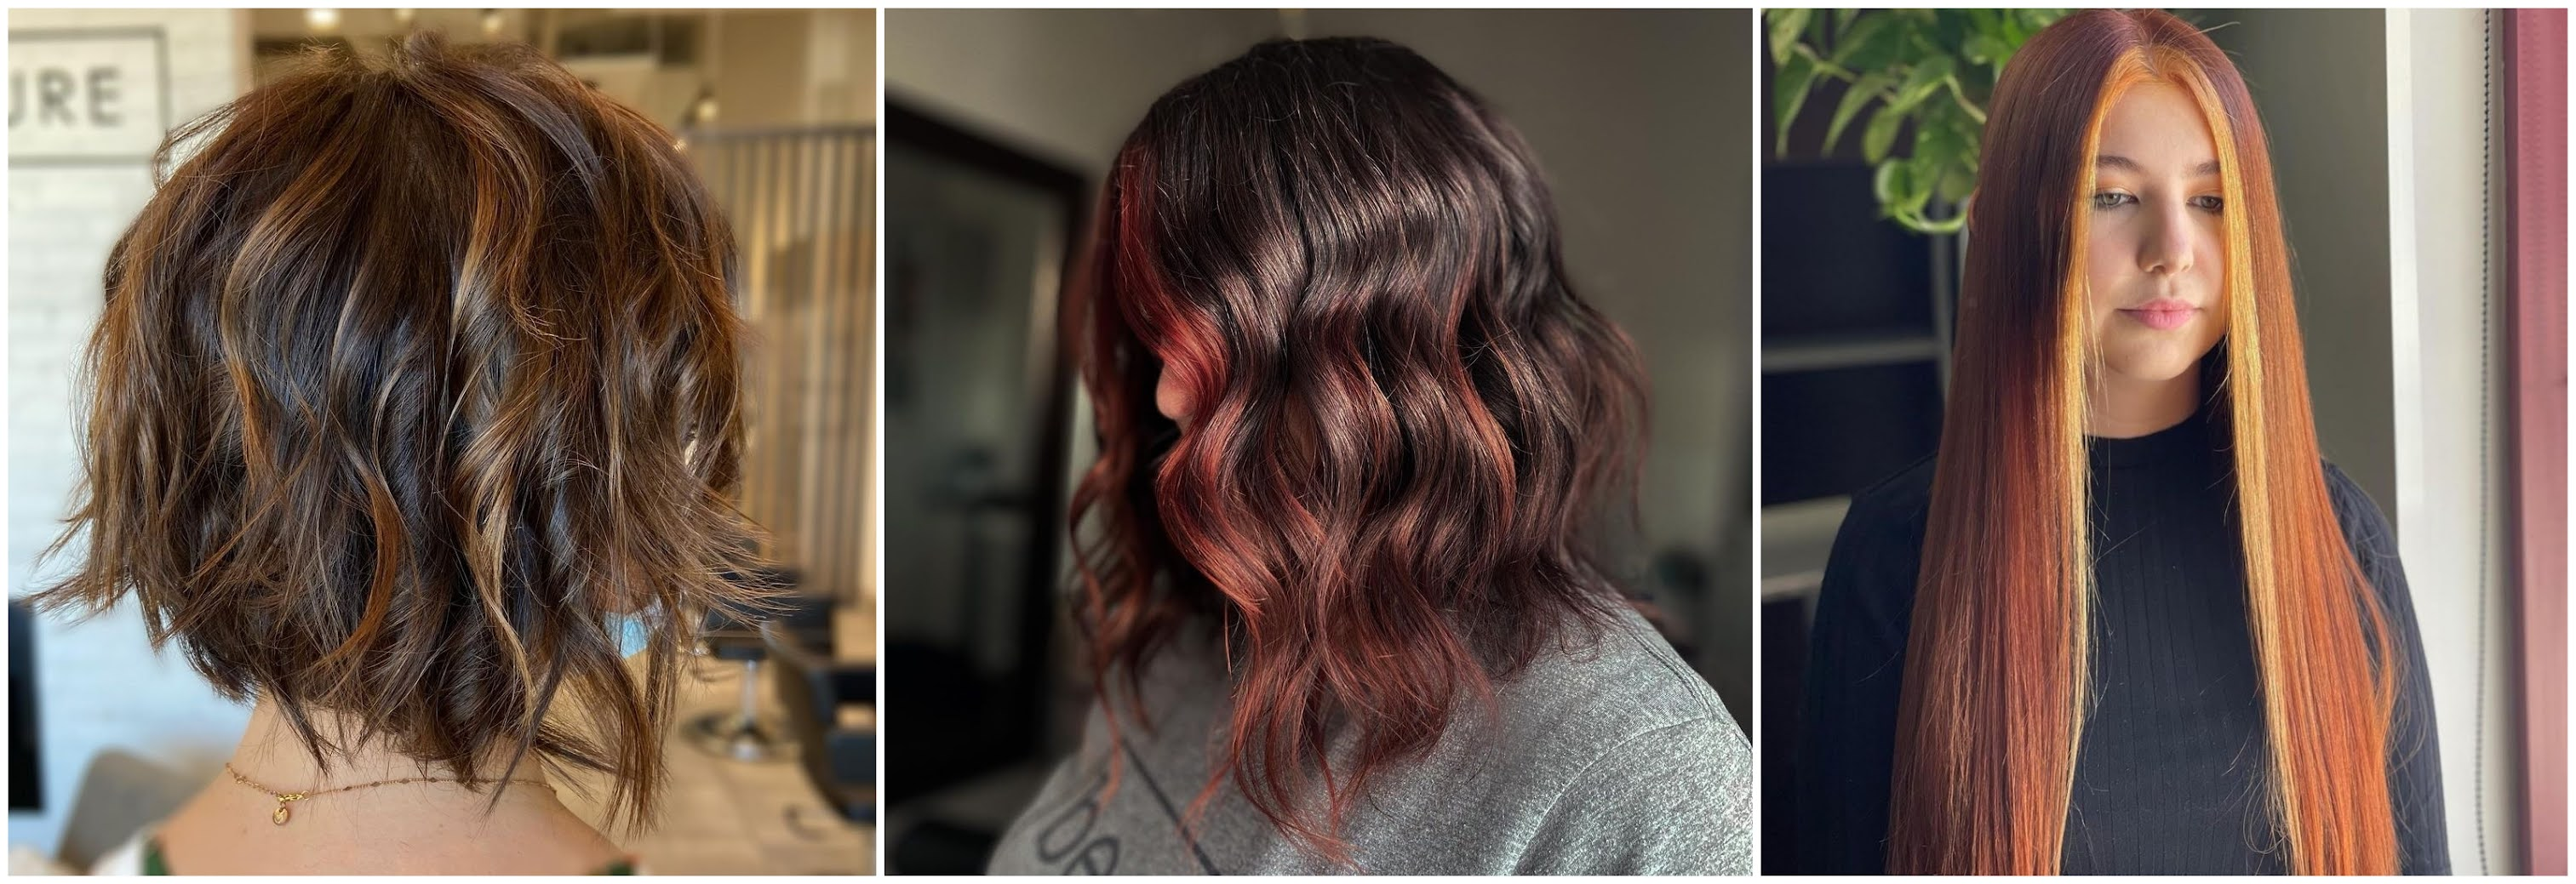 5 Fall Hair Trends To Try Now